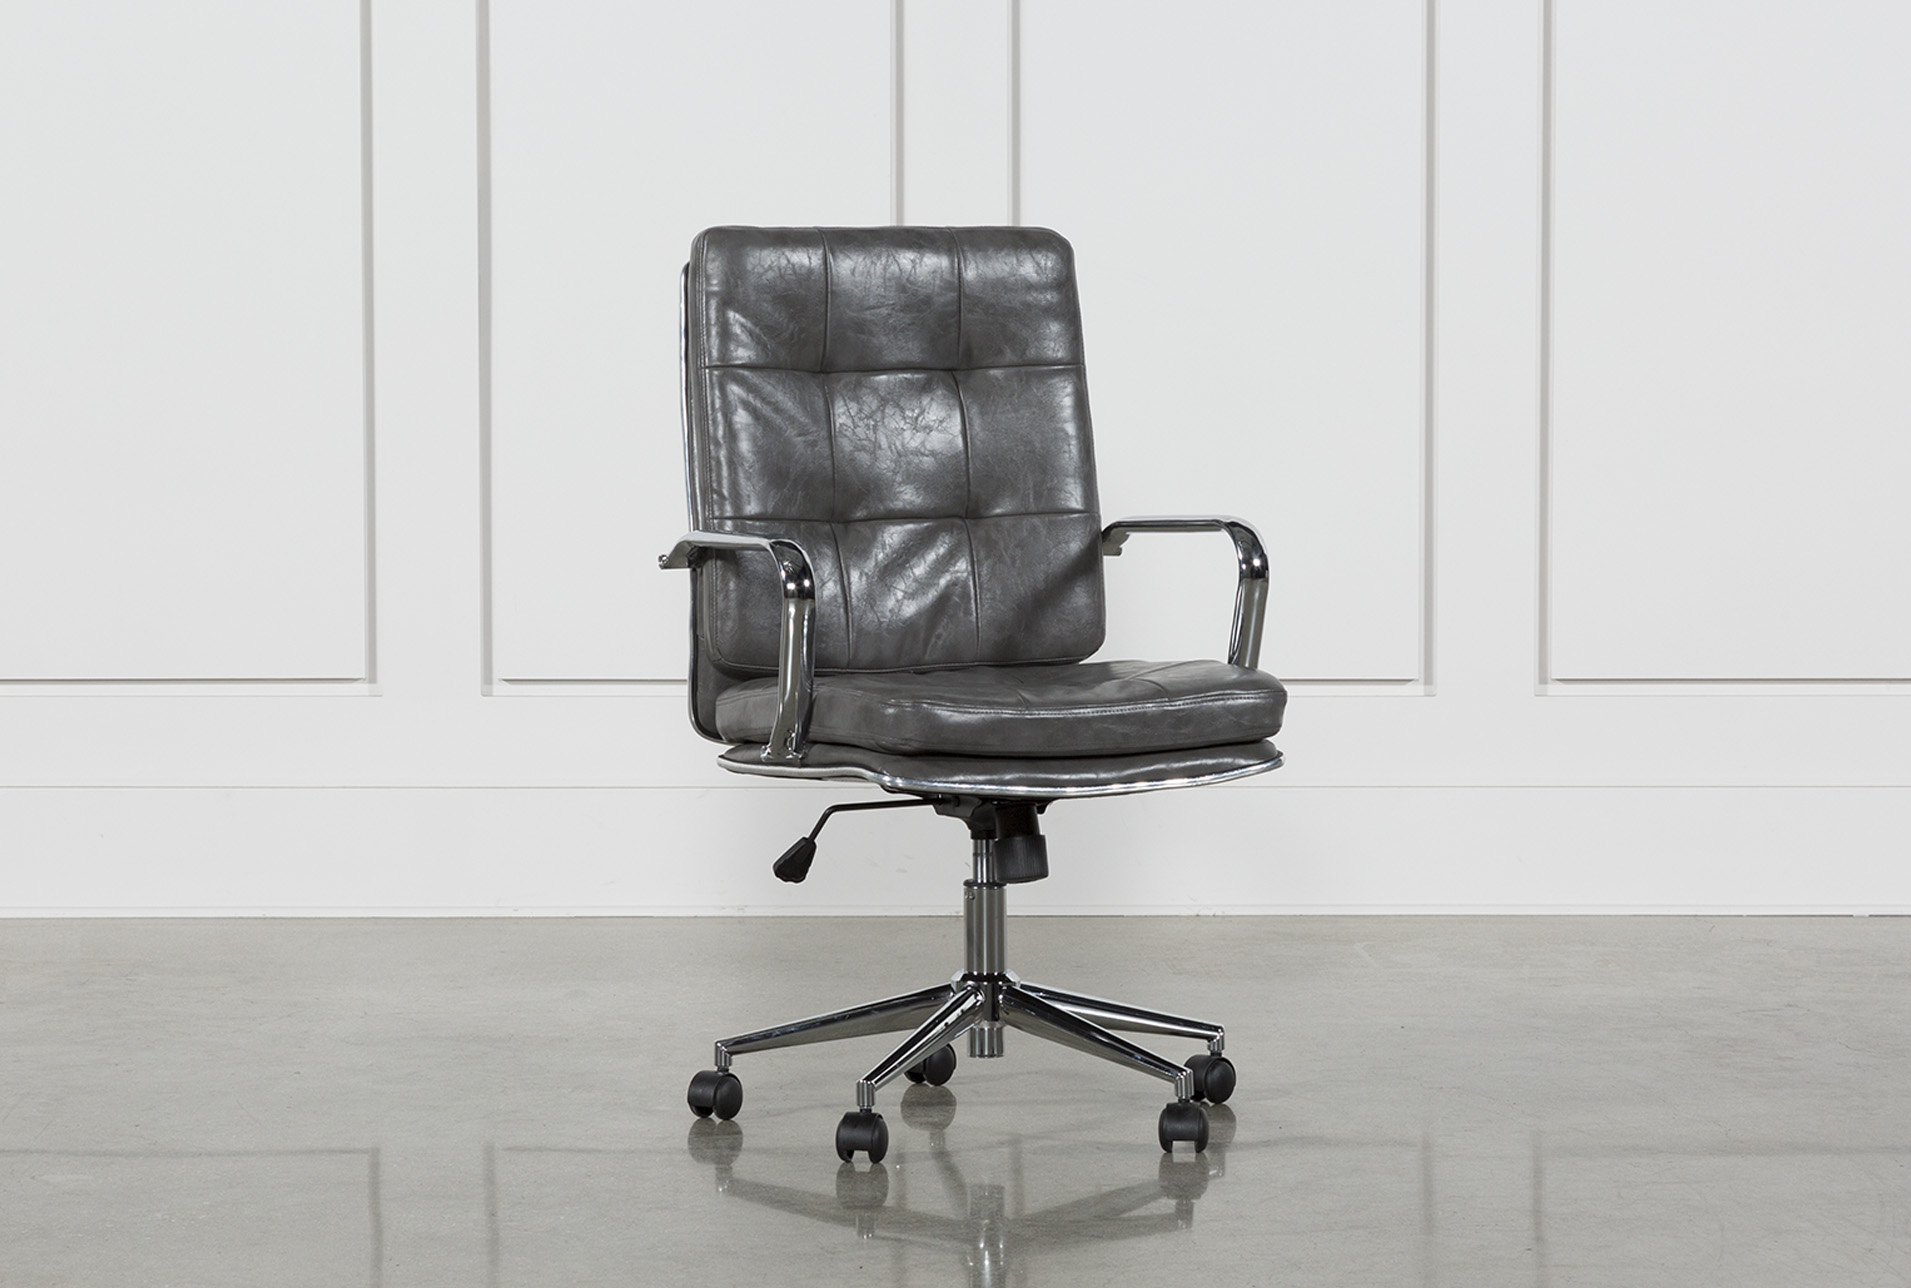 unique leather office chairs low for babies your home living spaces norton tufted chair